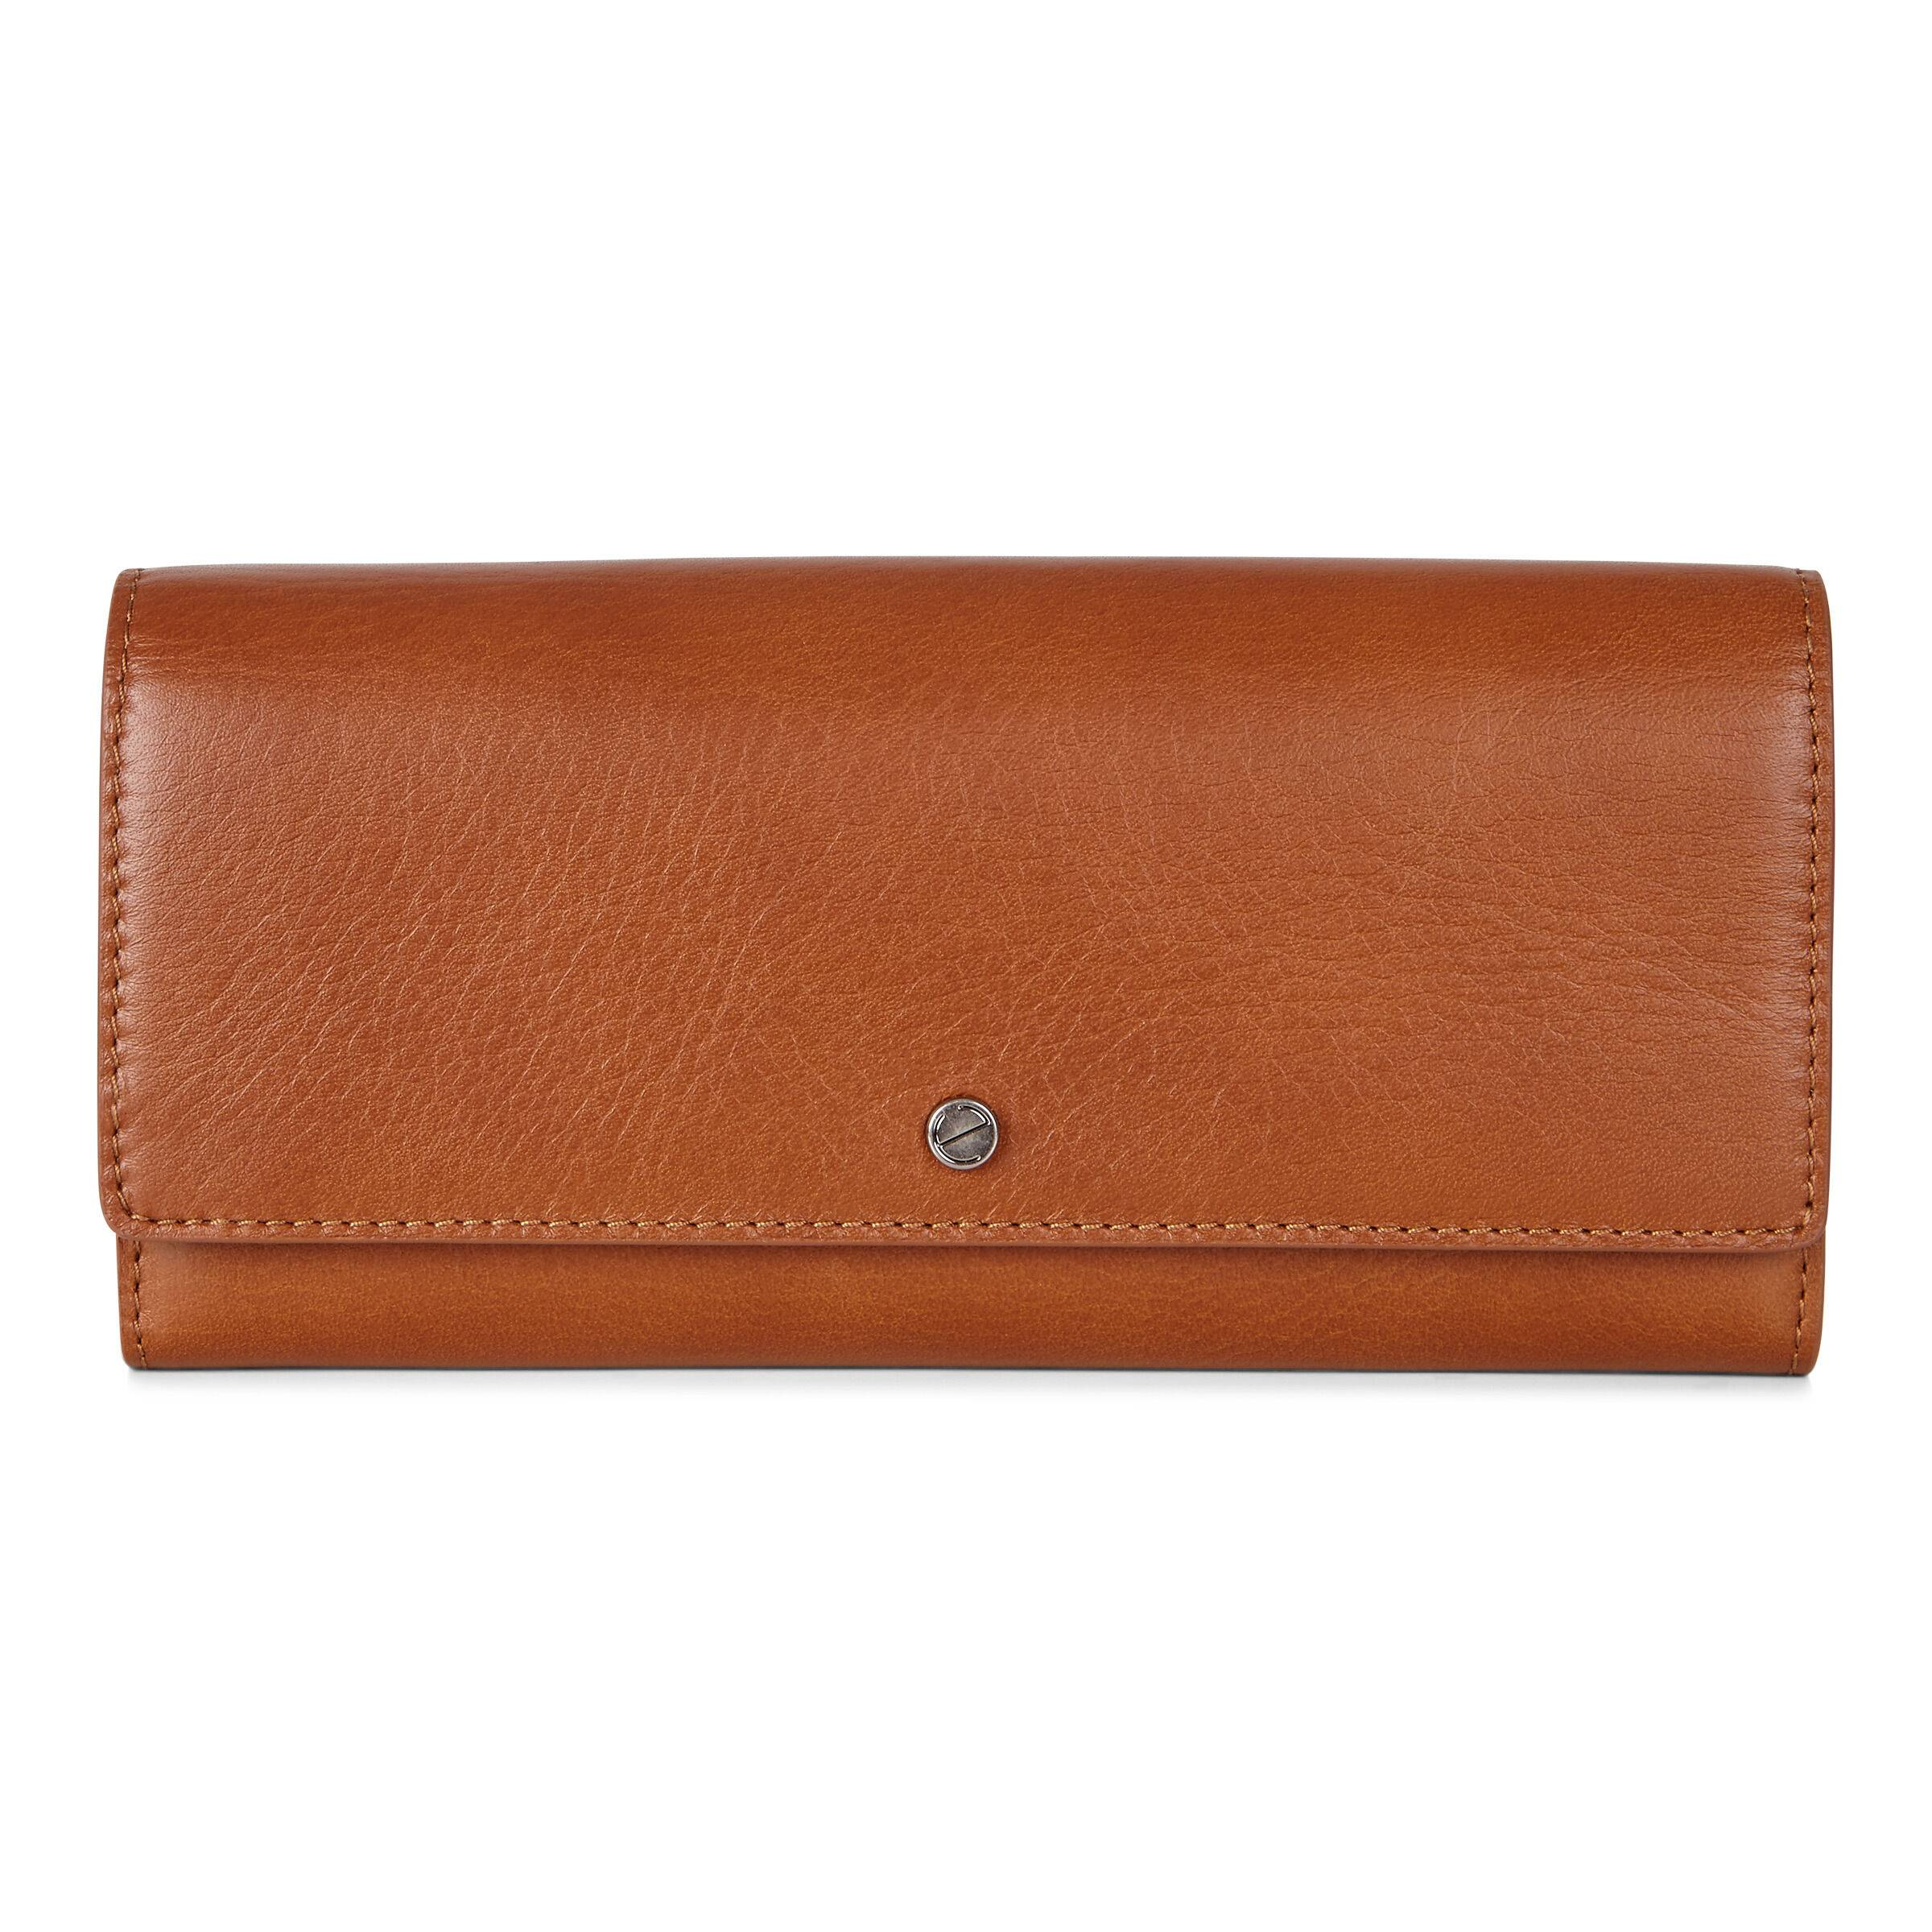 ECCO Sculptured Continental Wallet: One Size - Amber